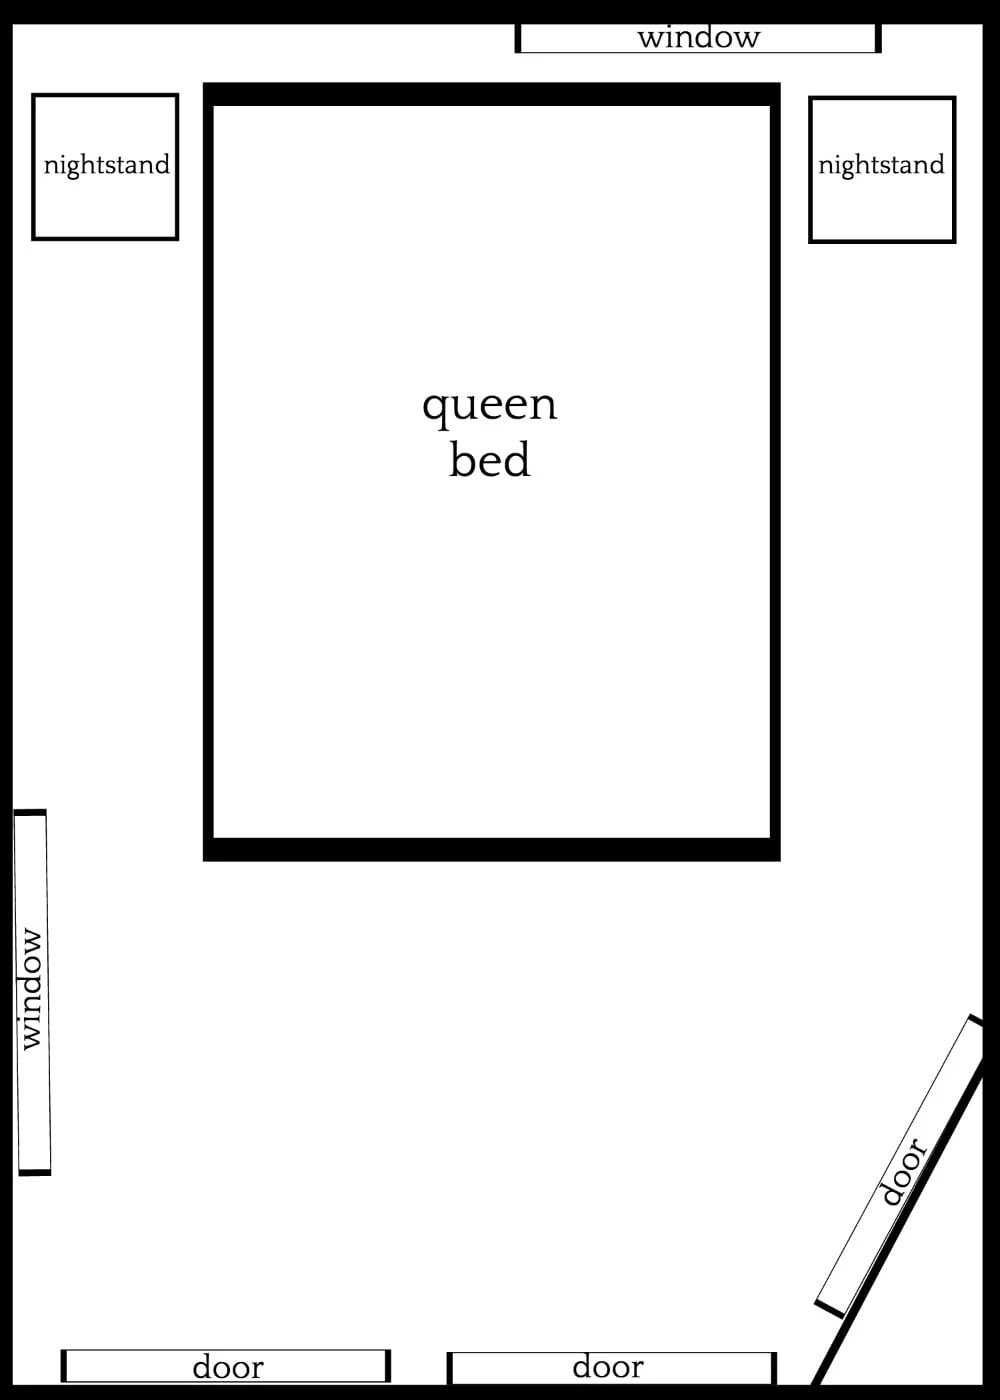 3 Furniture Layouts for a Small Bedroom With an Off-Centered Window